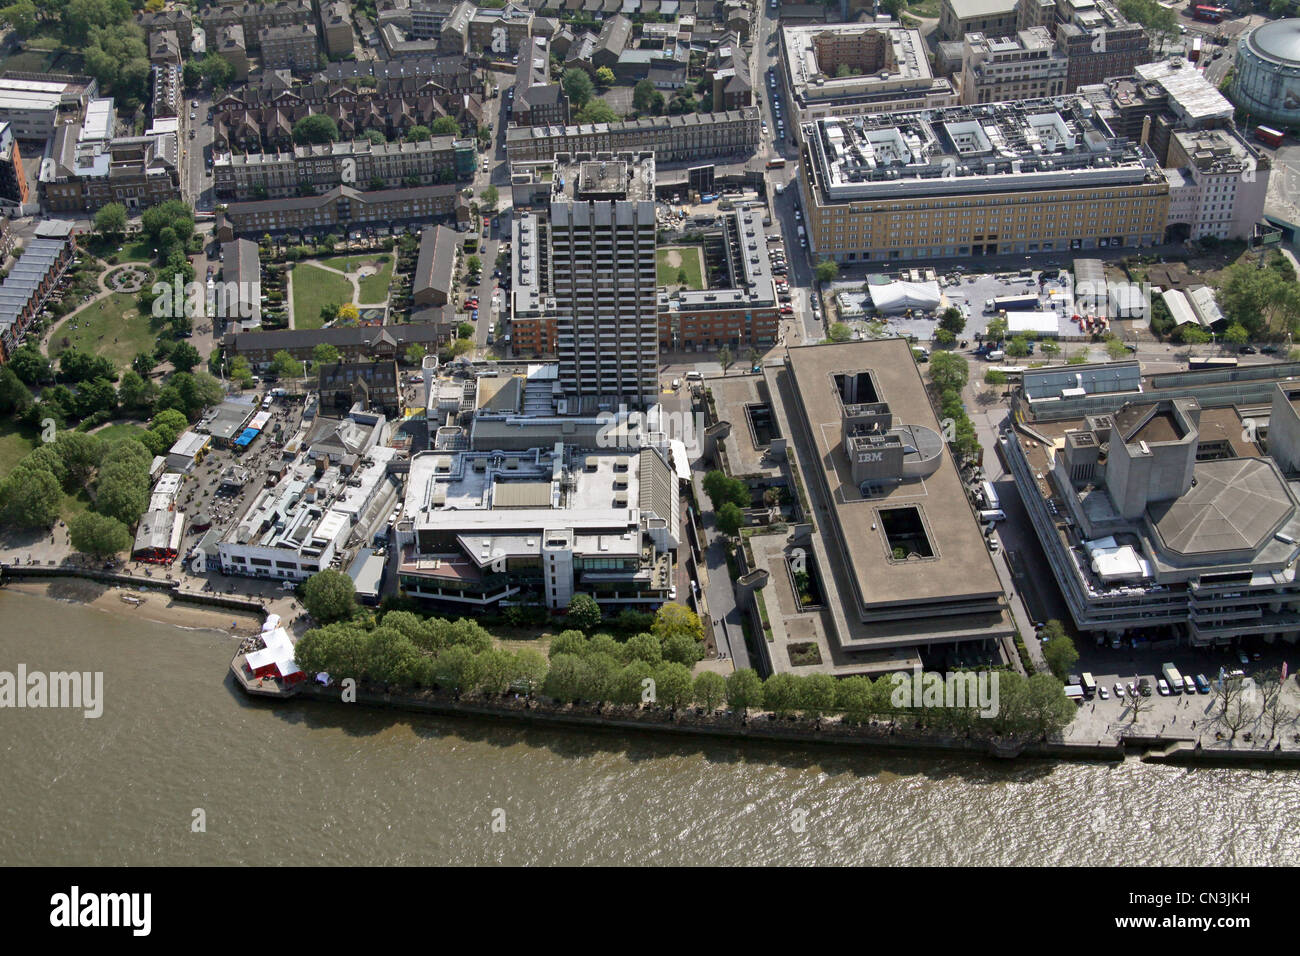 Aerial view of GMTV Studios, London South Bank, SE1 - Stock Image